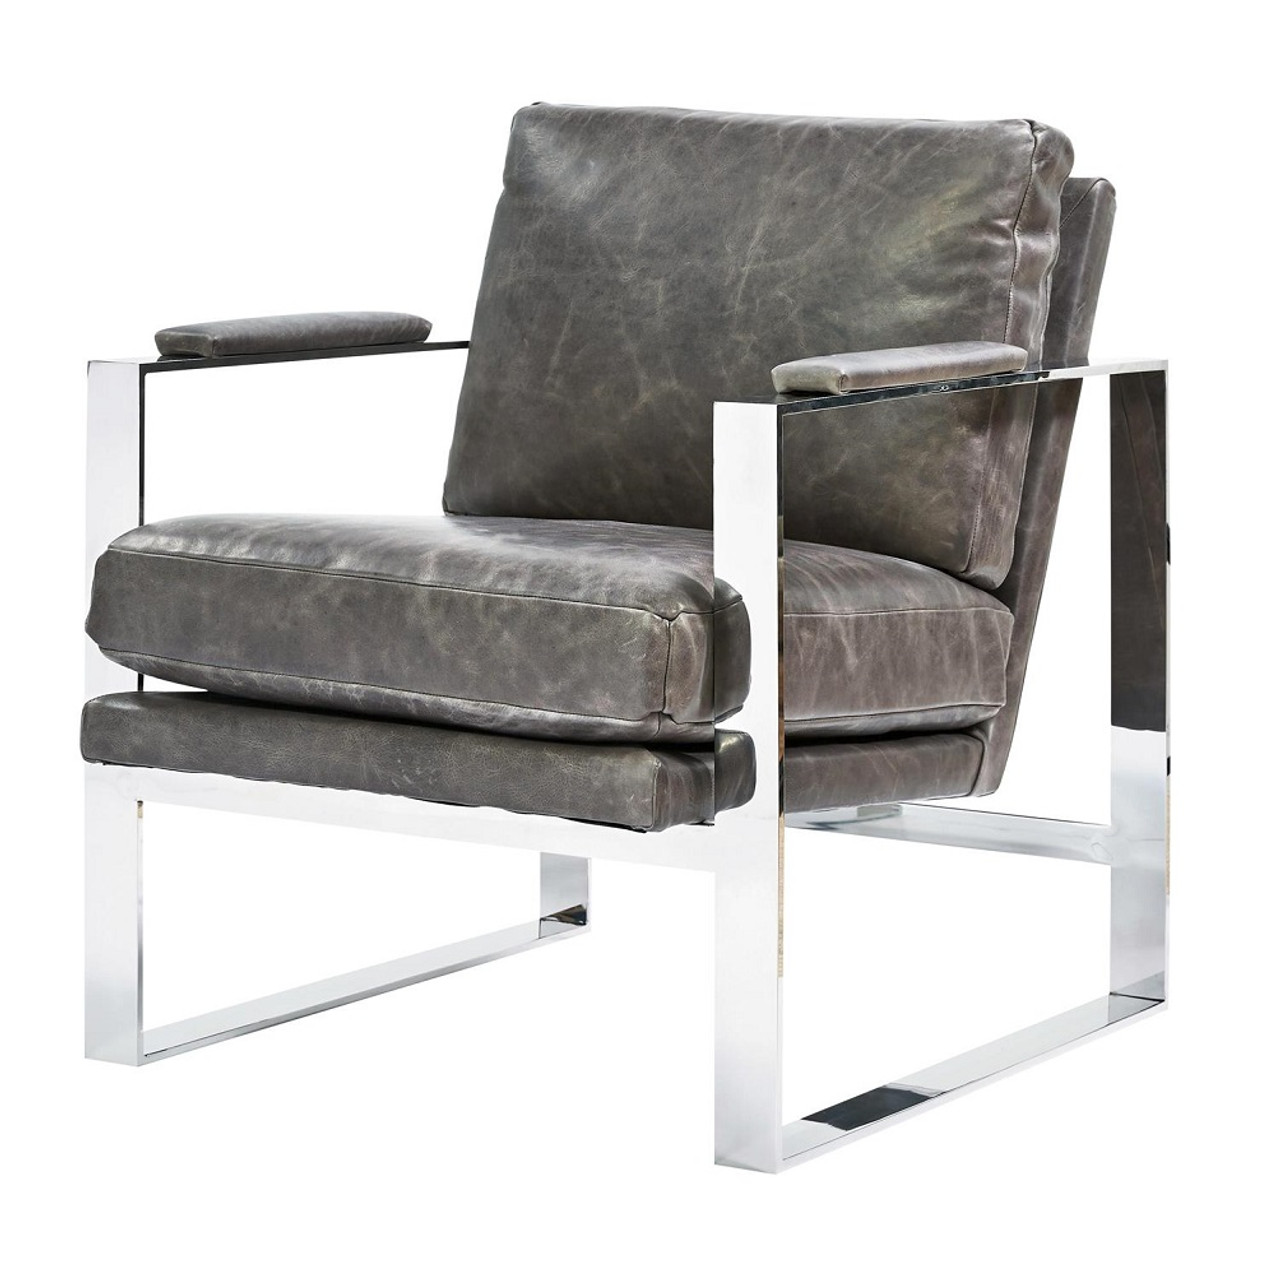 Leather Chair With Metal Accent On Arms: Elan Mid Century Modern Grey Leather Metal Arm Chair